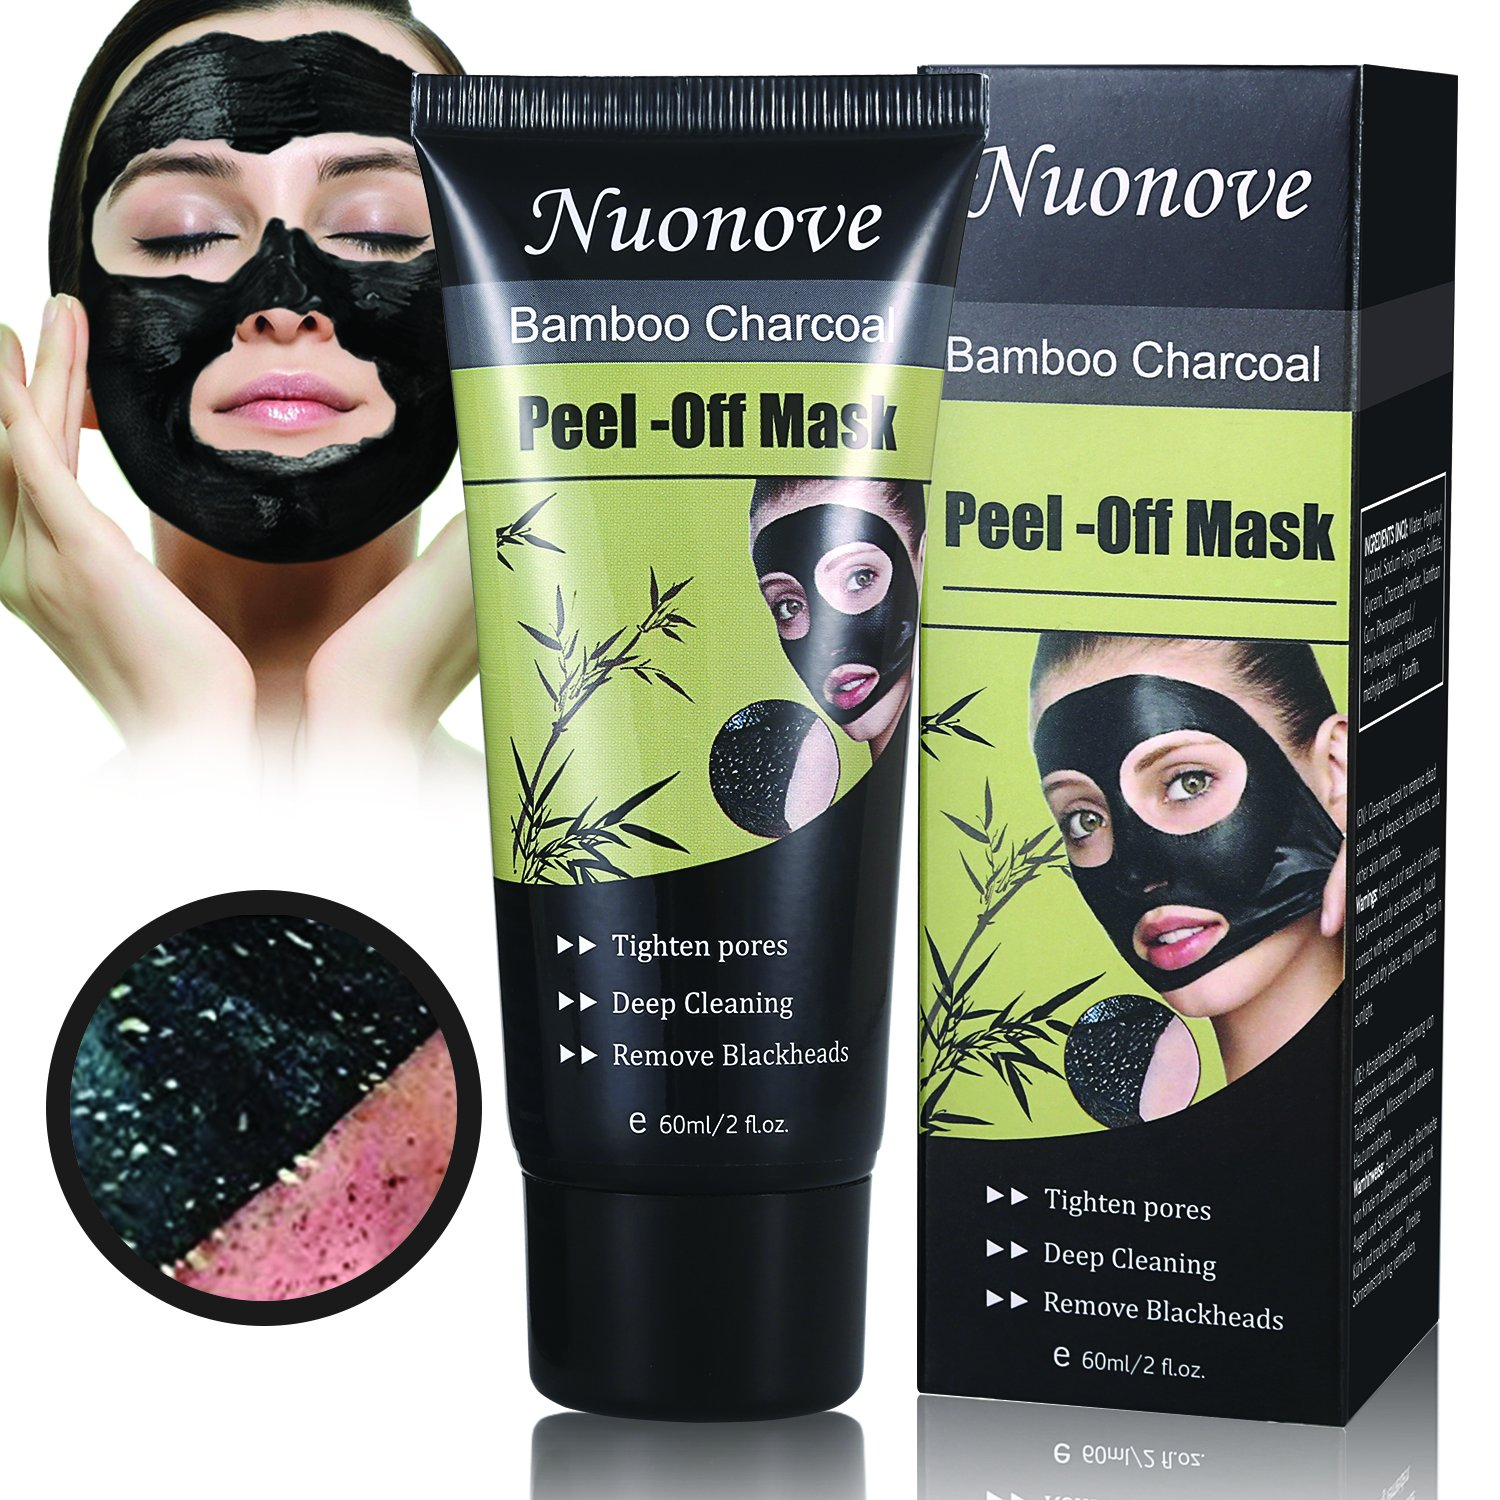 Charcoal Peel Off Mask, Black Mask Peel Off, Facial Masks Peel Off, Suction Cleaner Black Mask Tearing Resist Oily Skin Strawberry Nose Purifying Deep Cleansing (Mask) ToullGo Store